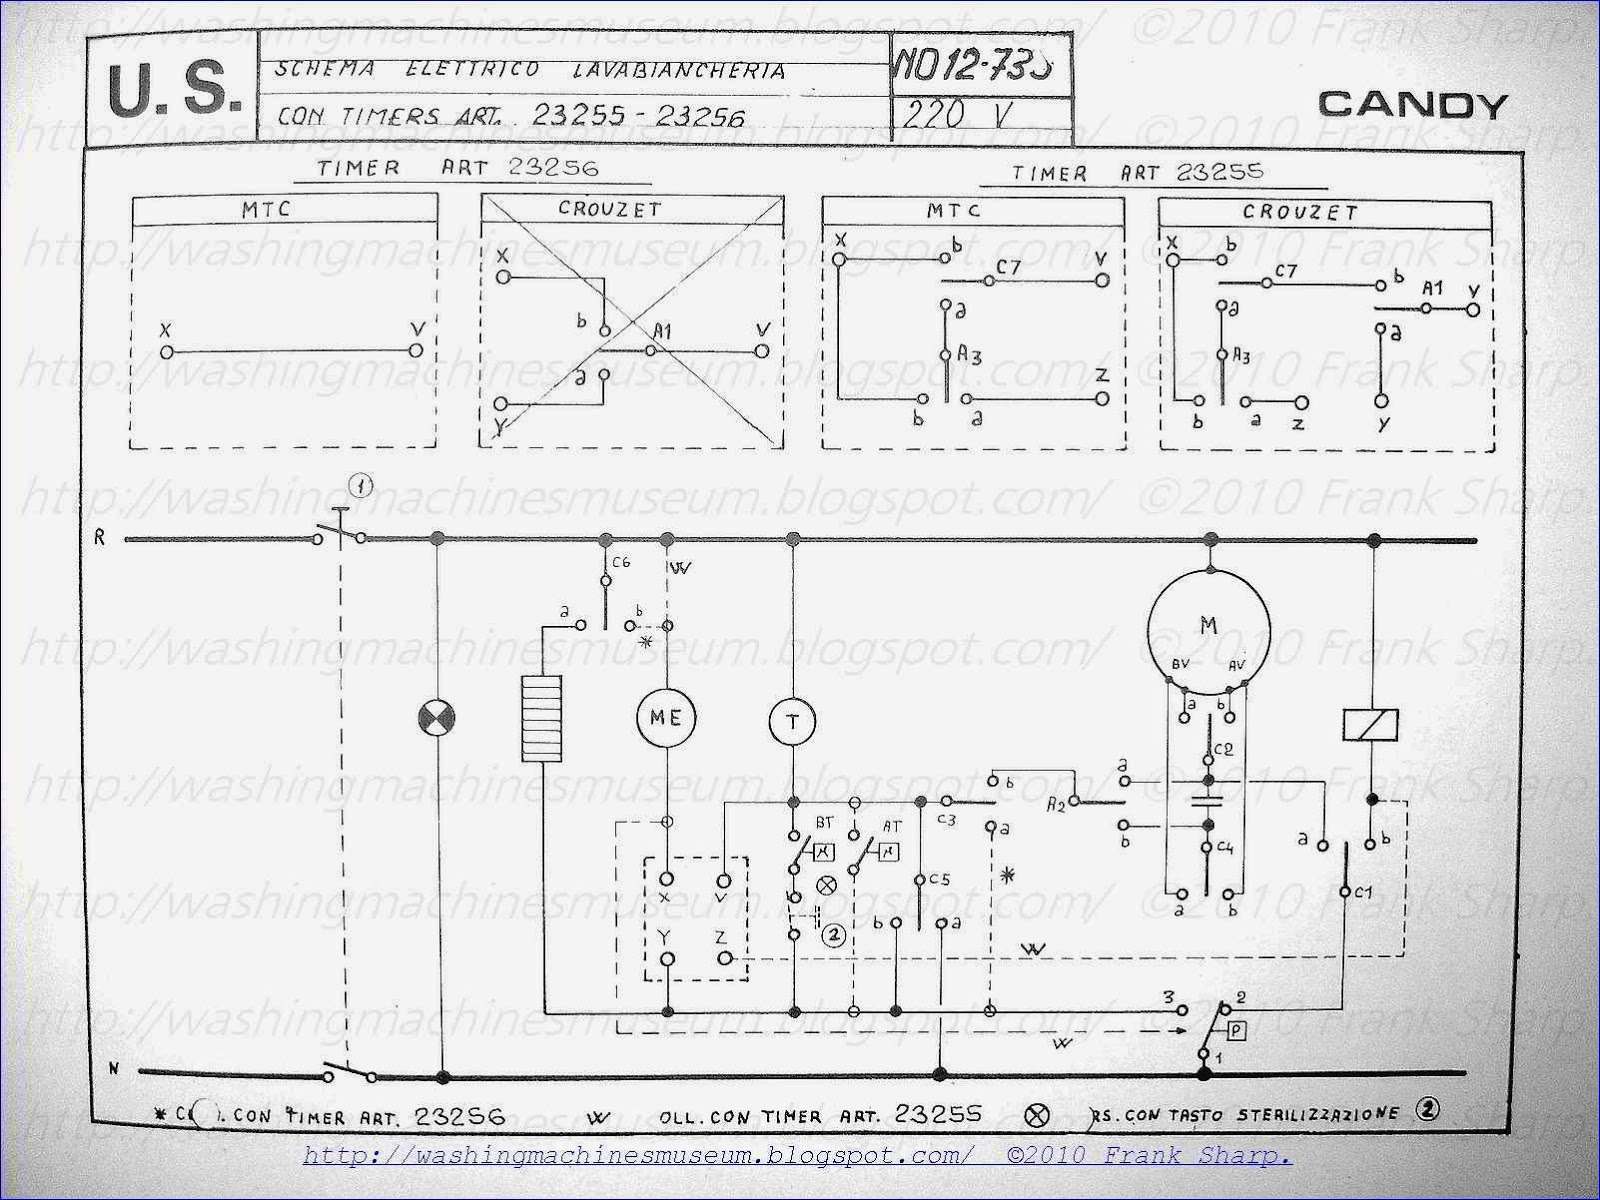 IMGH_06890__WMS diagrams 750449 wiring diagram for whirlpool dryer sample wiring diagram whirlpool dryer at gsmx.co